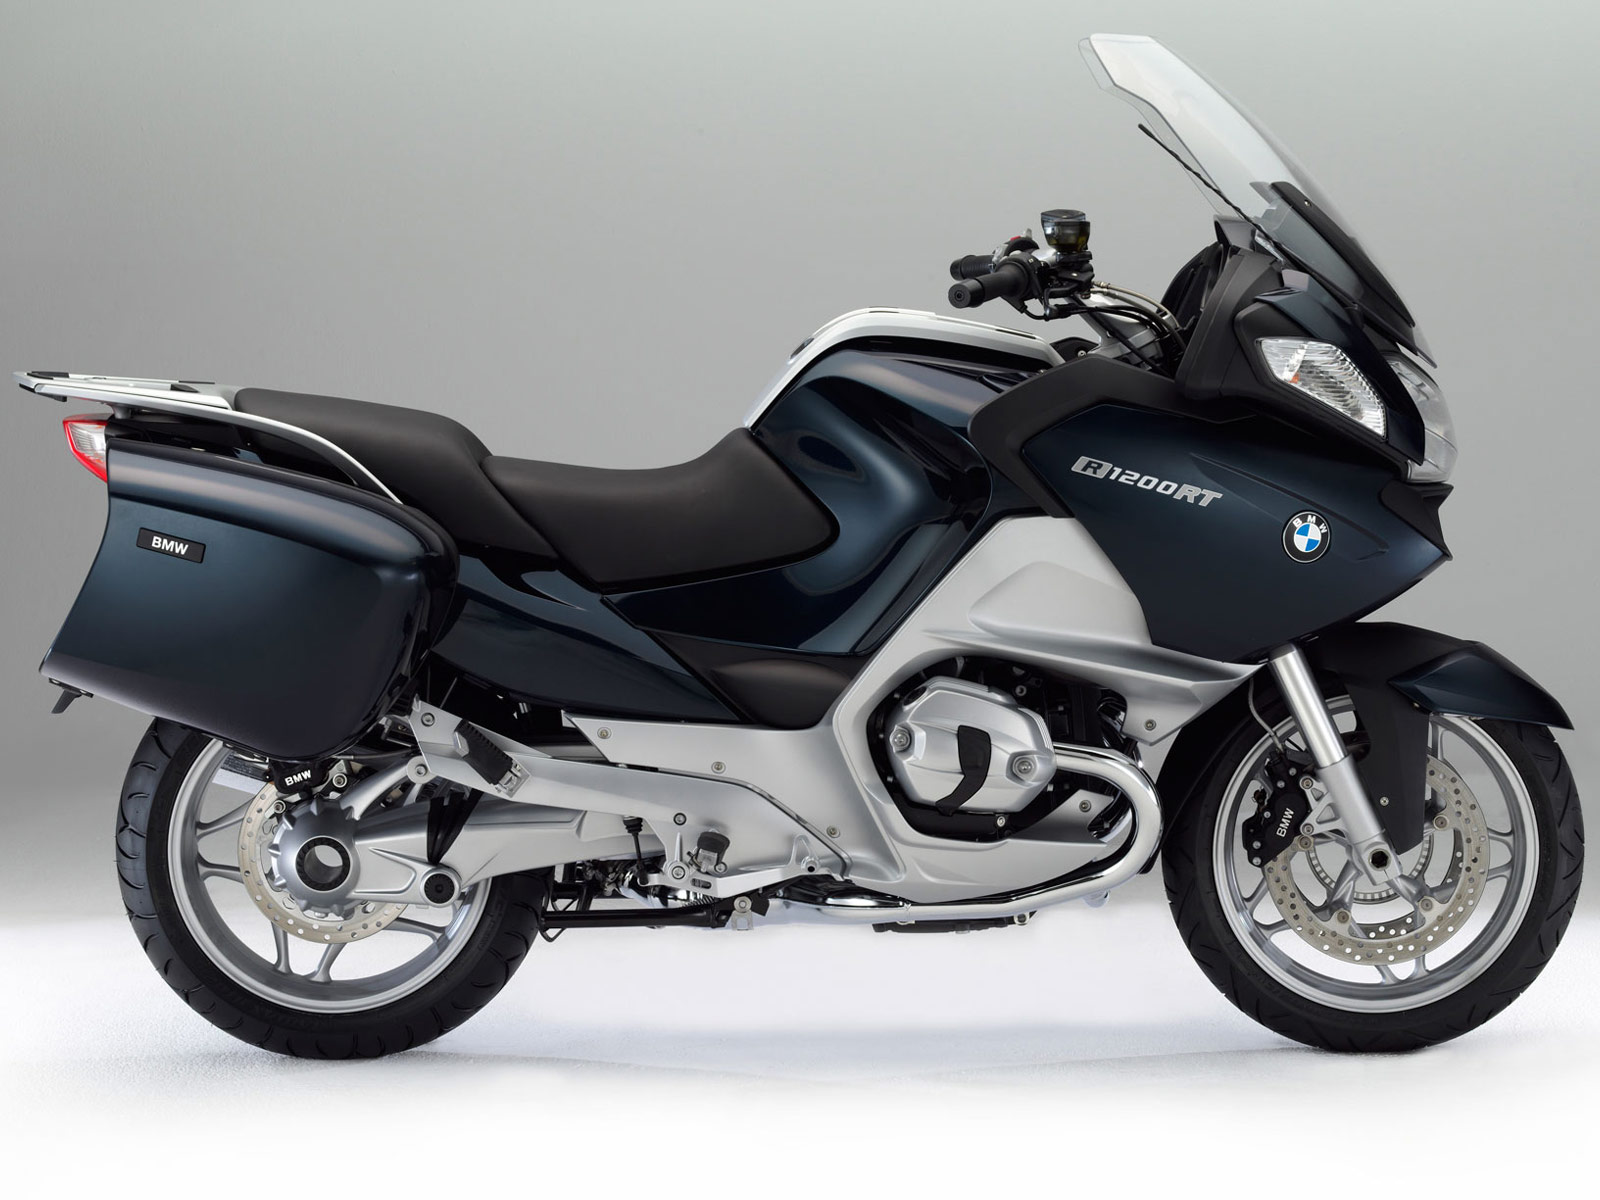 2012 bmw r1200rt motorcycle insurance information. Black Bedroom Furniture Sets. Home Design Ideas